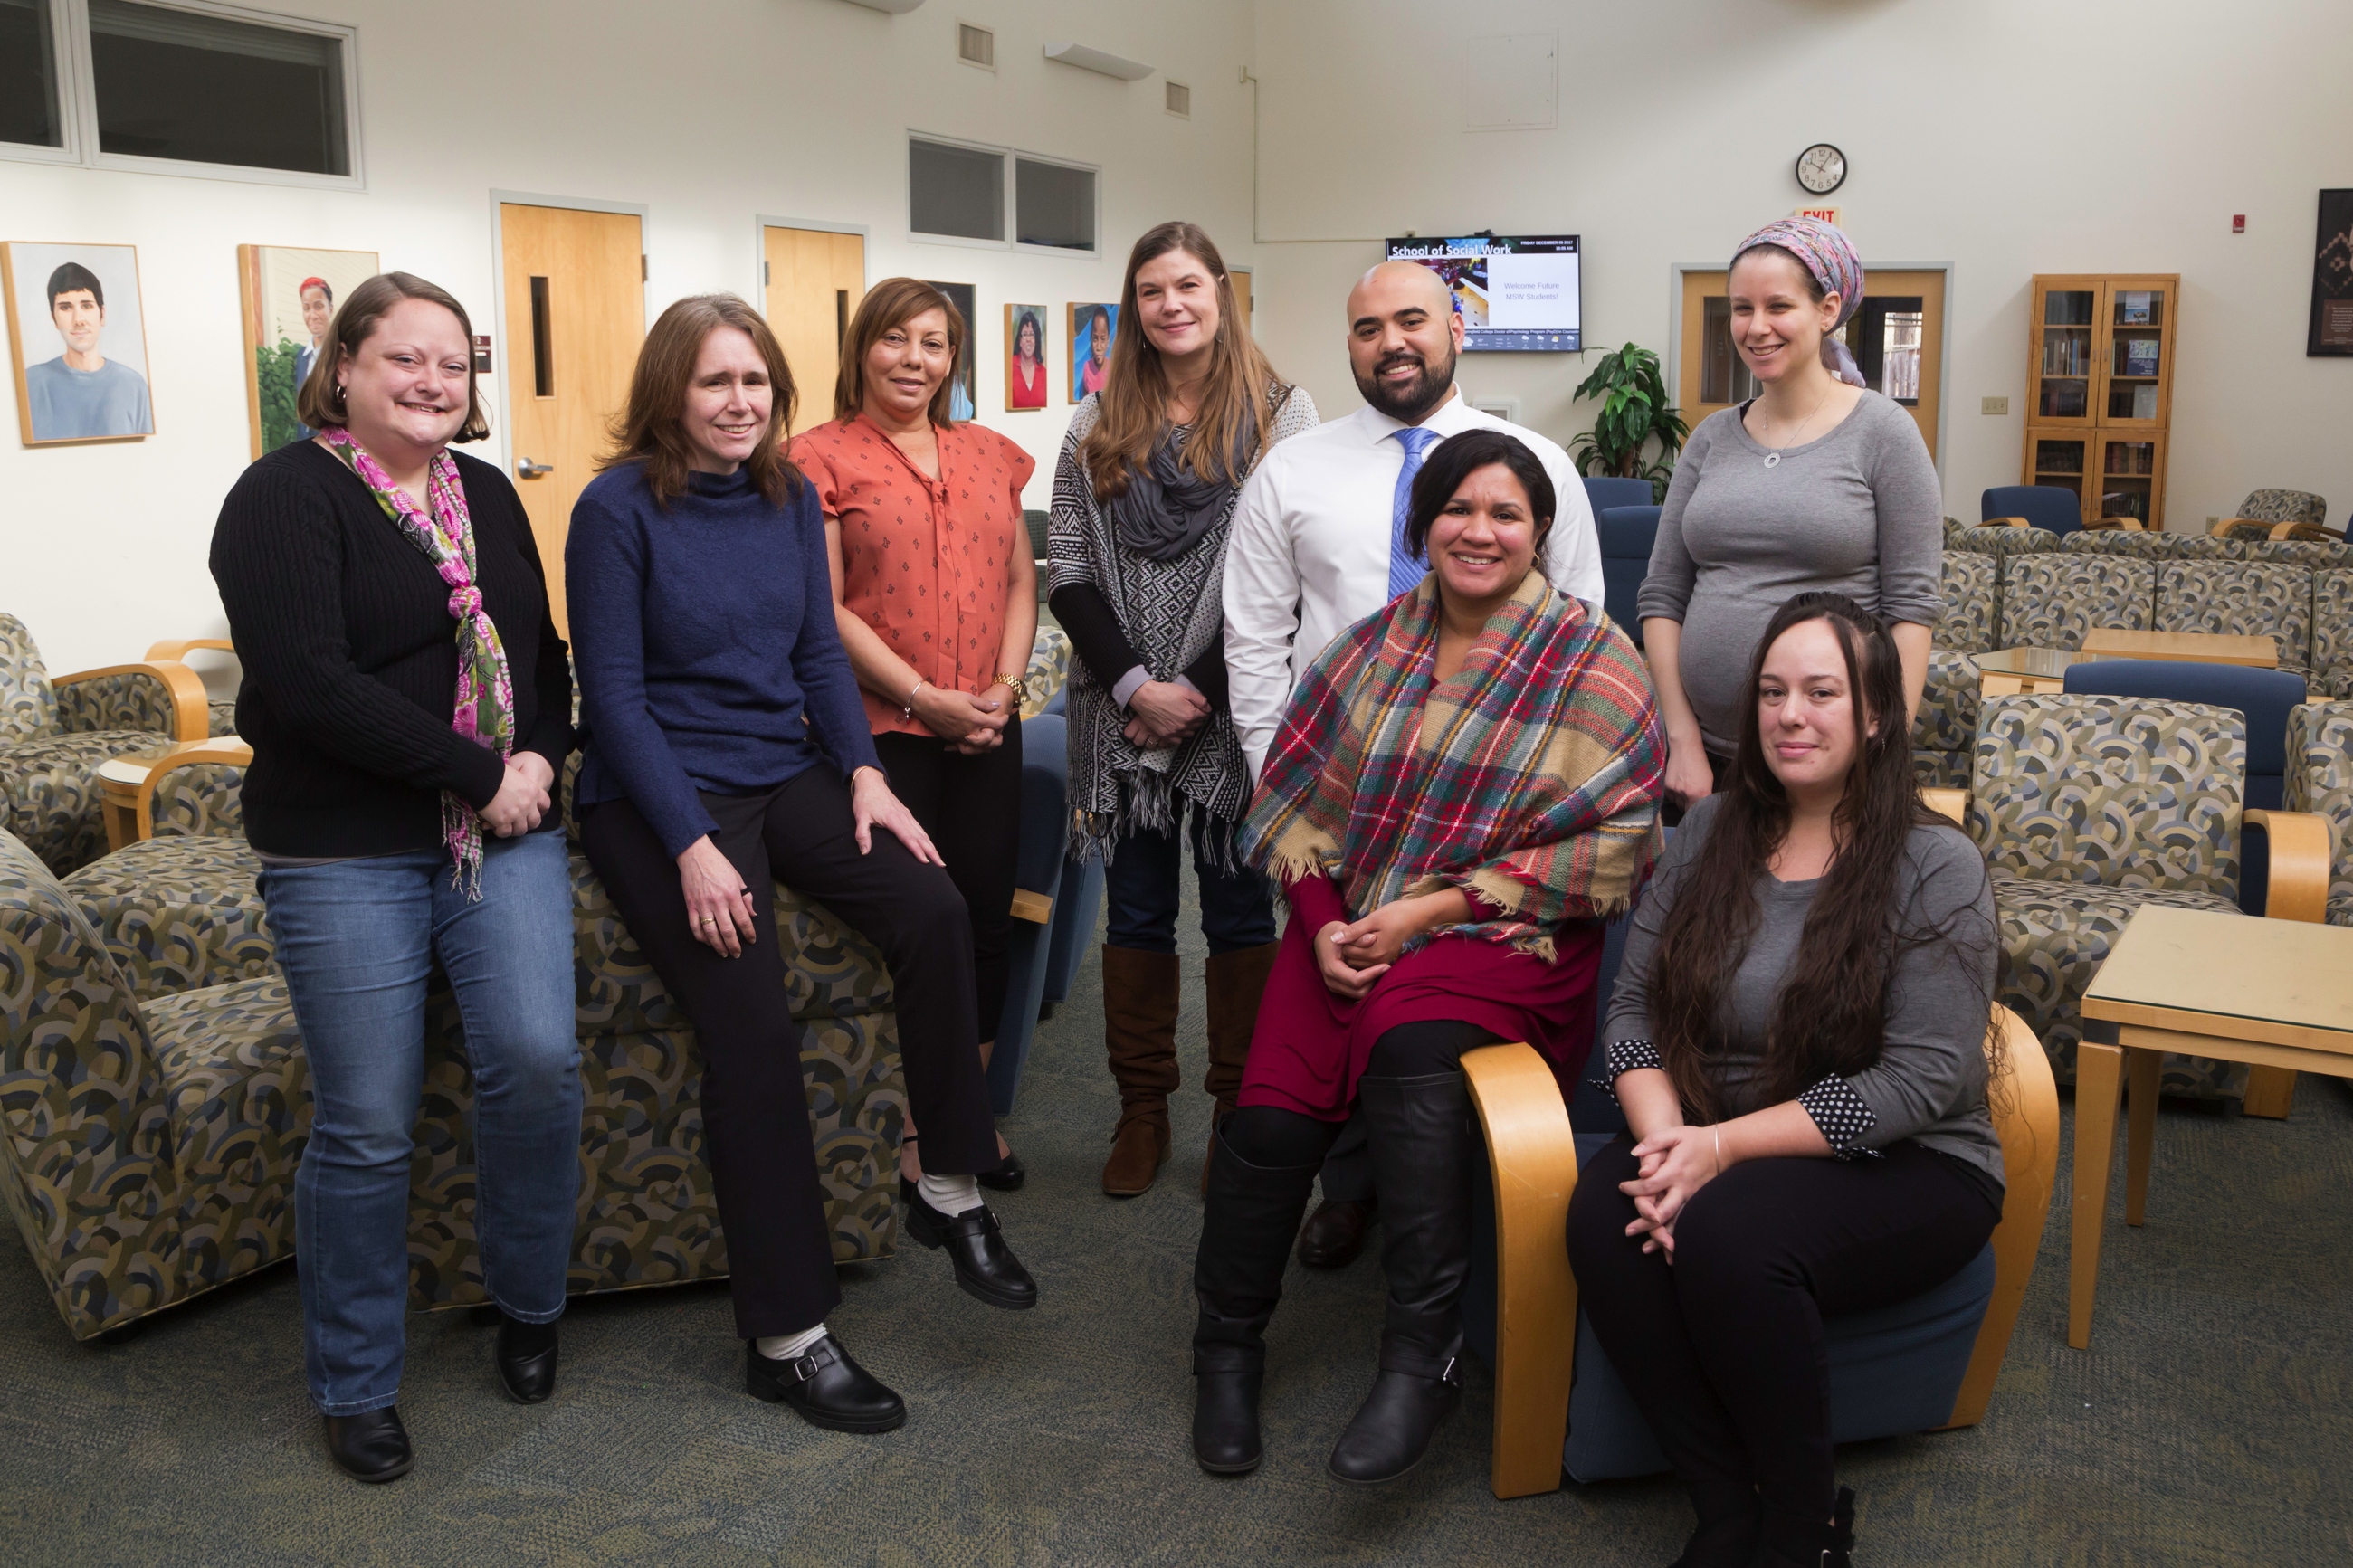 Group image of School of Social Work individuals